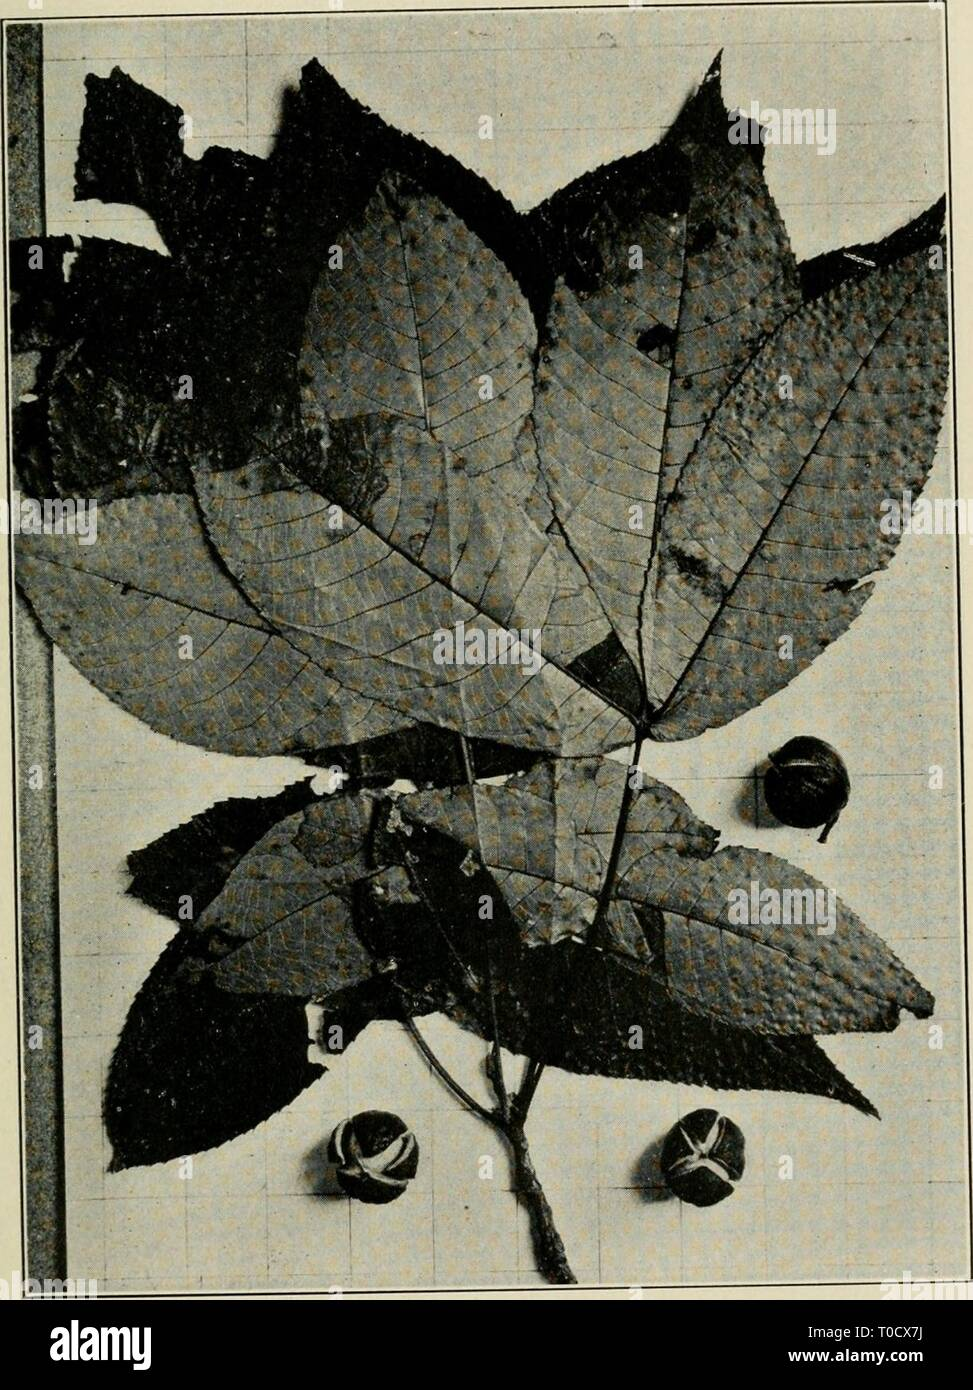 Economic botany of Alabama (1913-1928) Economic botany of Alabama economicbotanyof12harp Year: 1913-1928.  JUGLANDACEAE 95    Fig 25 Leaves and nuts of Hiraria oralis (?), from the same locality as the preceding figure, collected October 5, 1912, and photographed later in the same month, against a background ruled in inch squares. - Stock Image